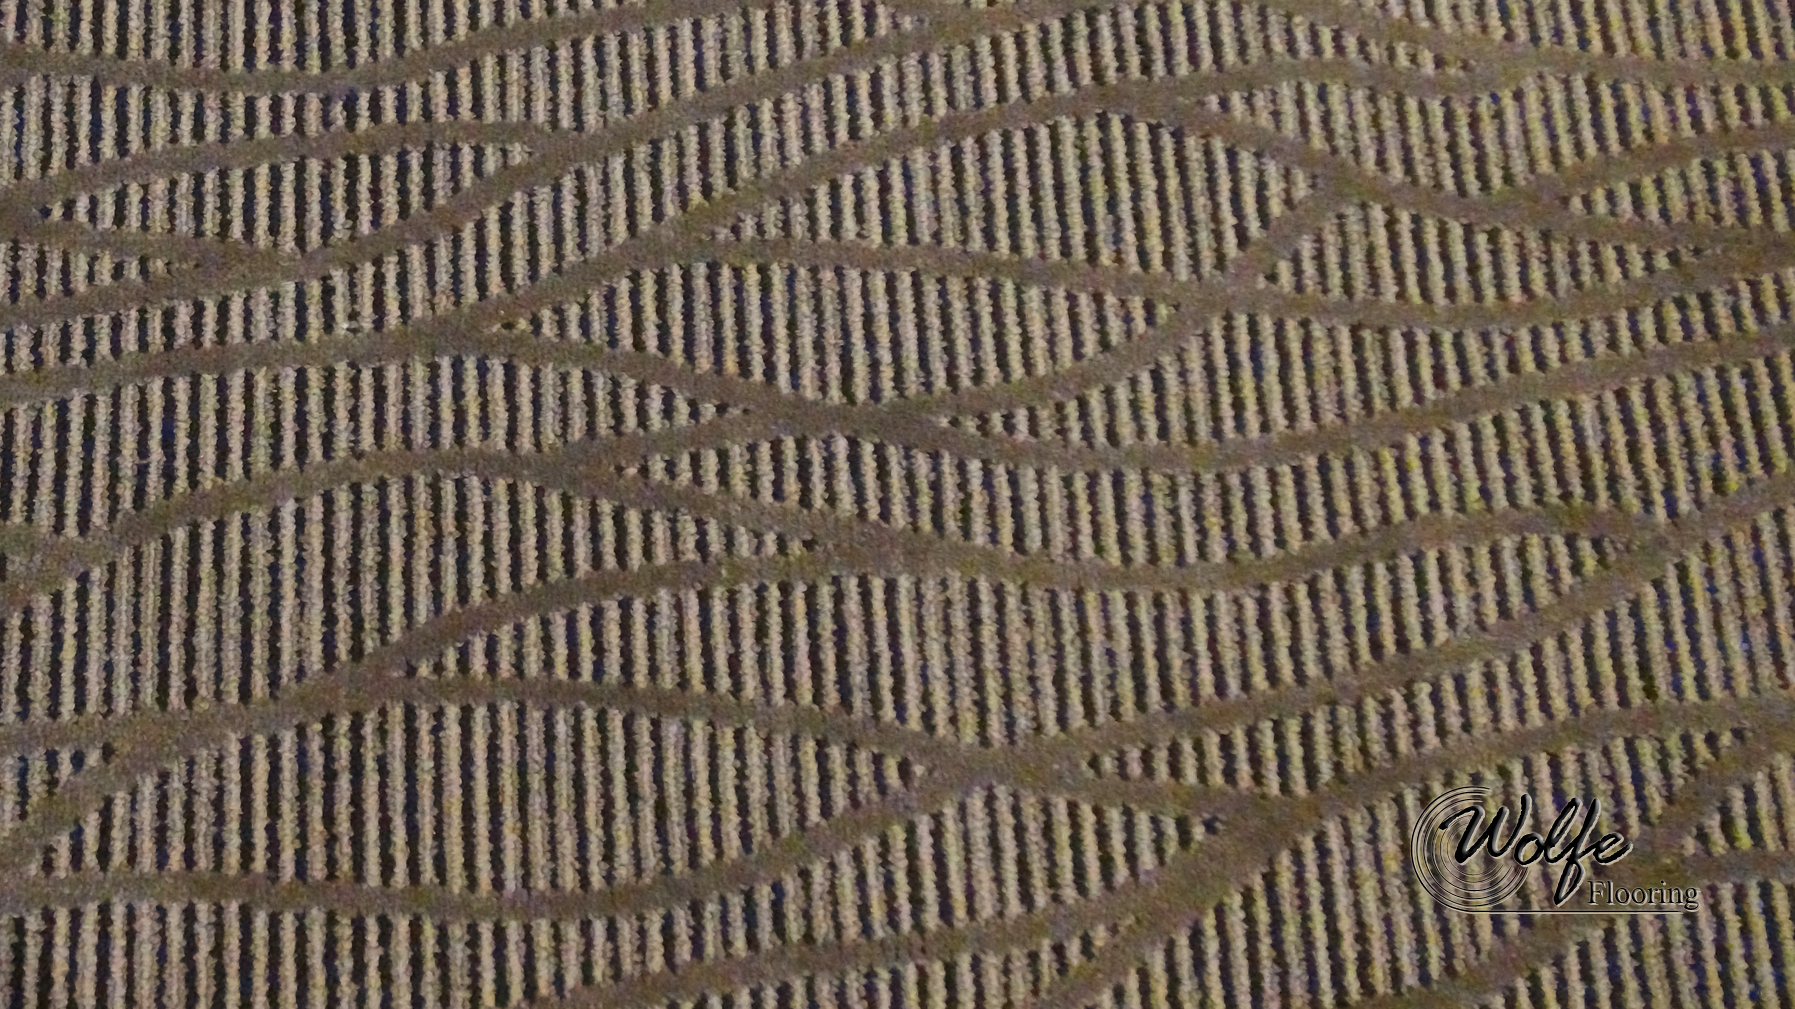 2016-Downtown-Restaurant-Double-stick-Carpet-Installation-06-Meandering-Lines-over-Linear-Pattern.jpg